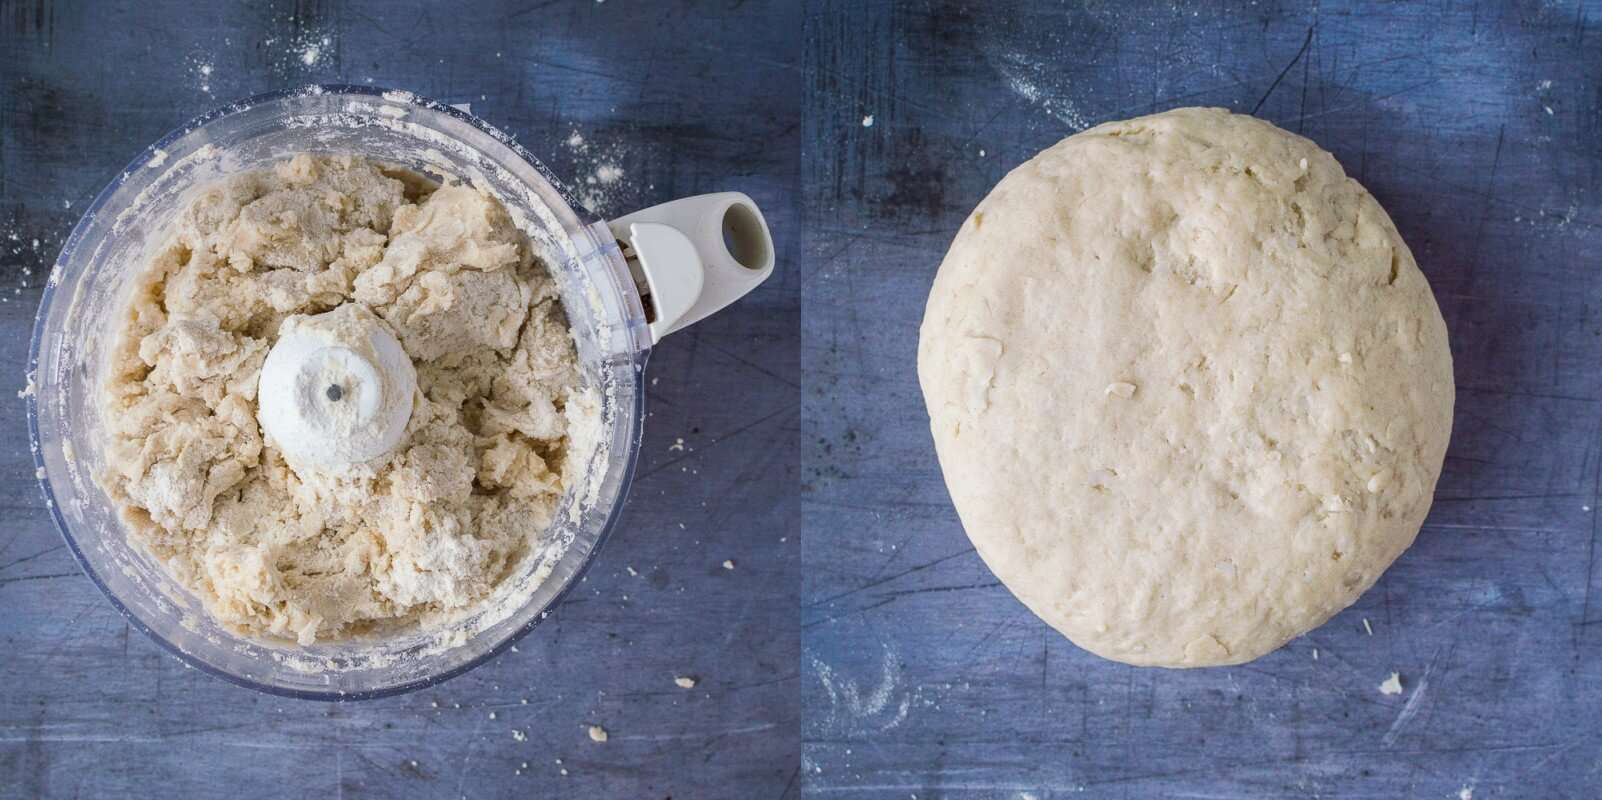 coconut oil pastry step 2